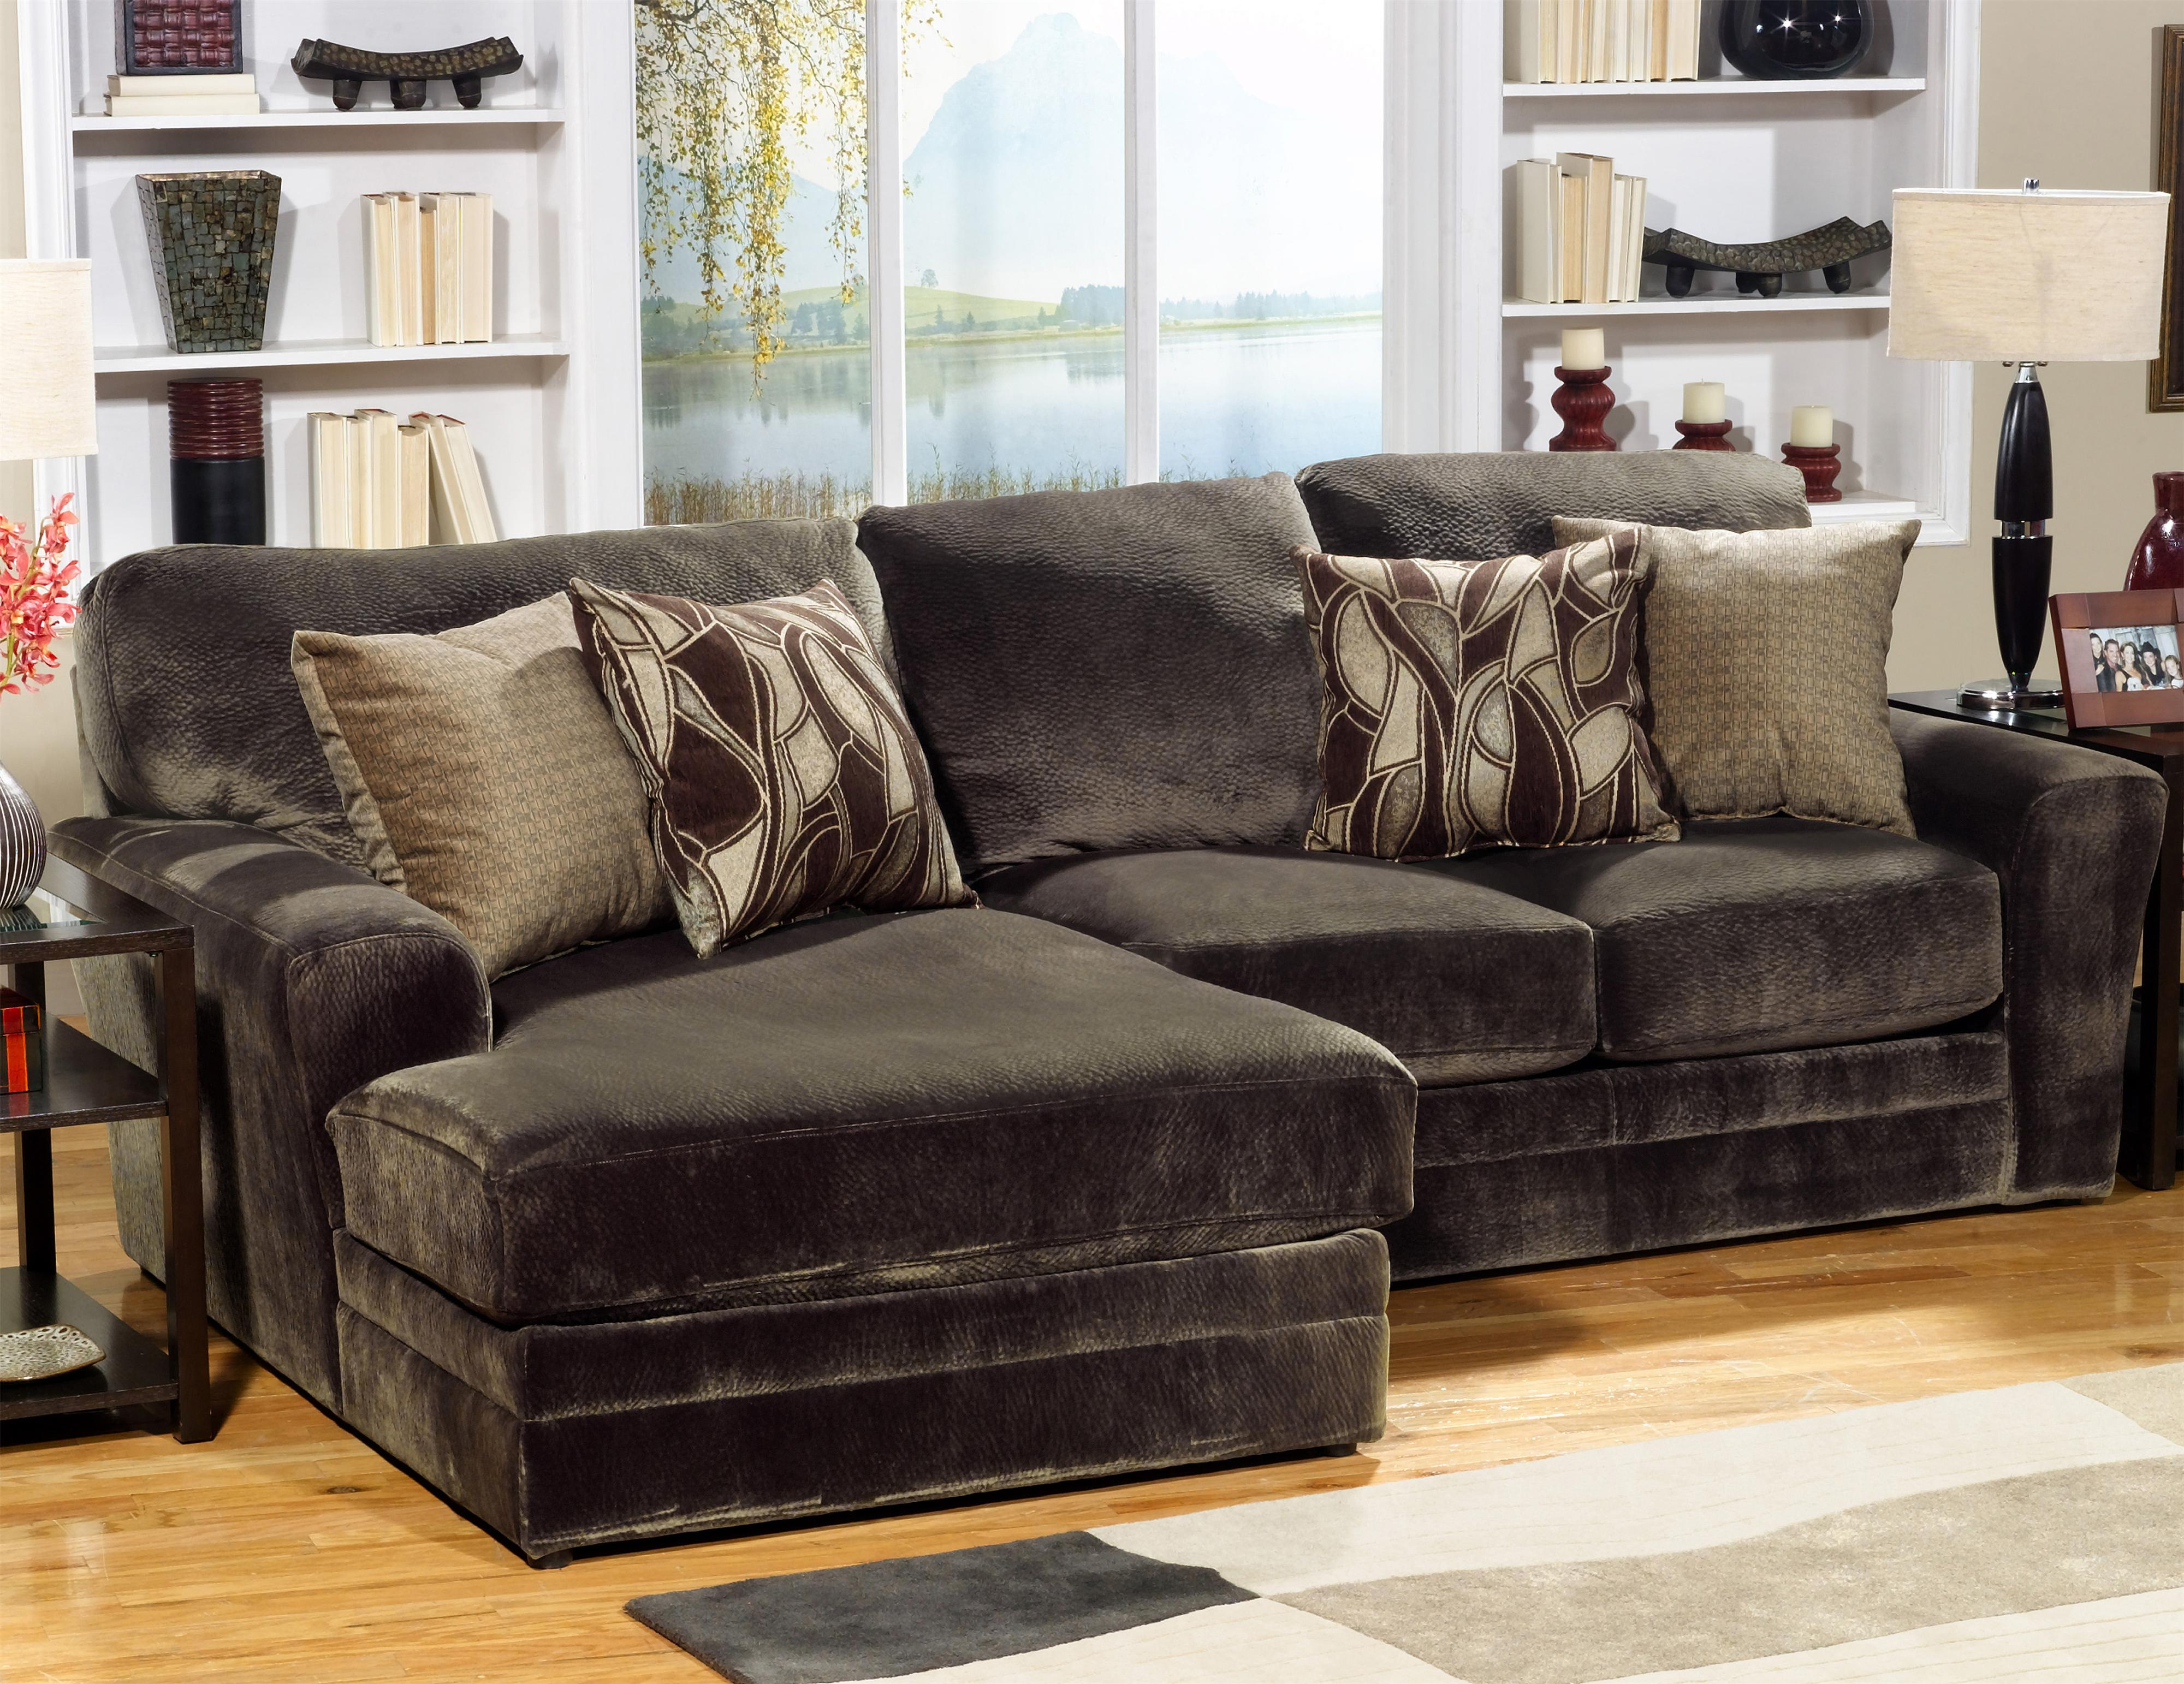 Jackson Furniture 4377 Everest Sectional Sofa - Item Number: 4377-75-2334-09+42